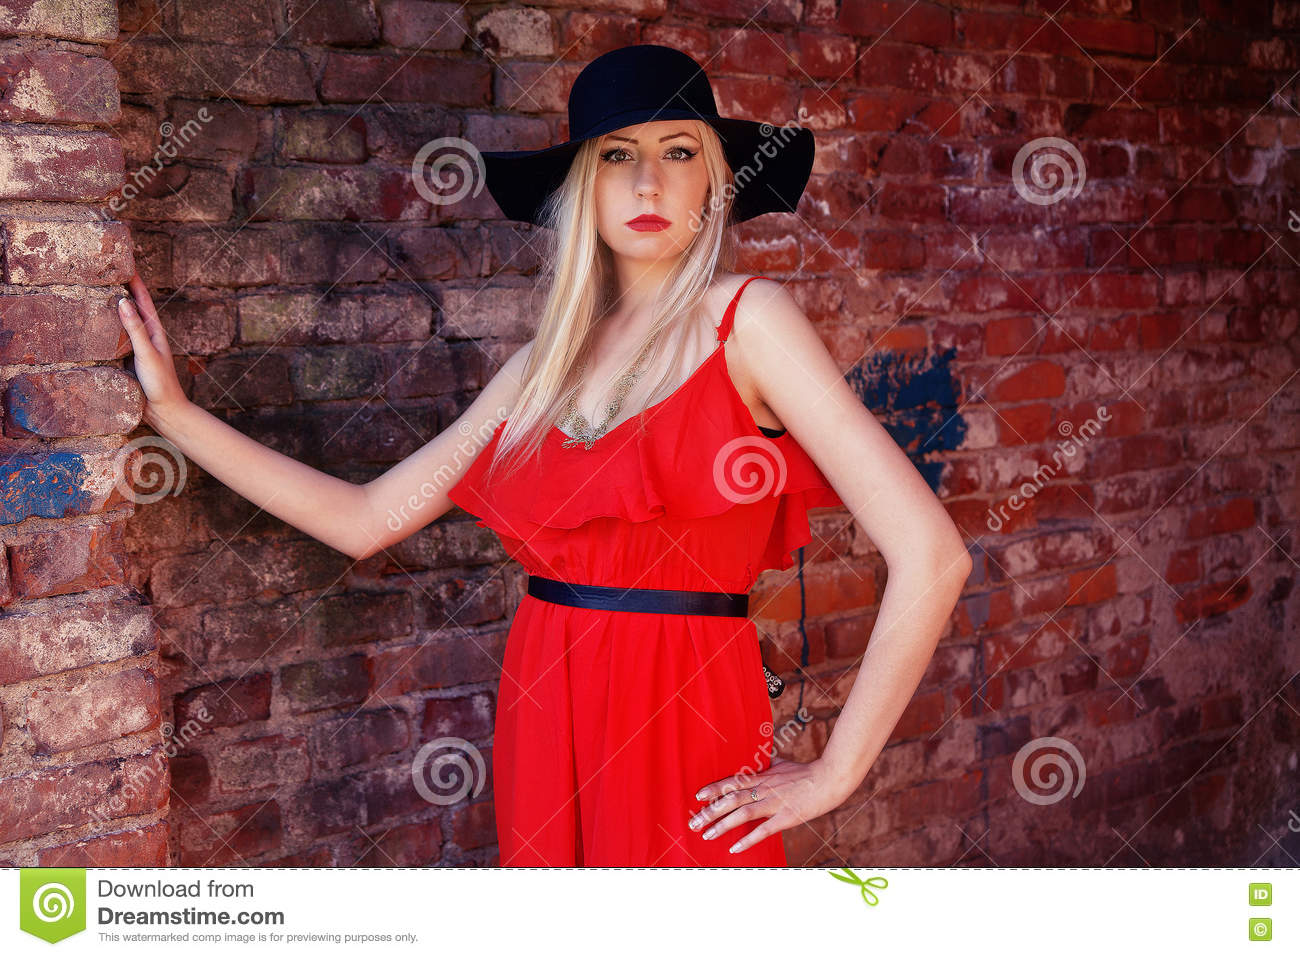 Fashionable Woman In Red Dress And Black Hat Stock Image - Image of ... 88eb9e293f9